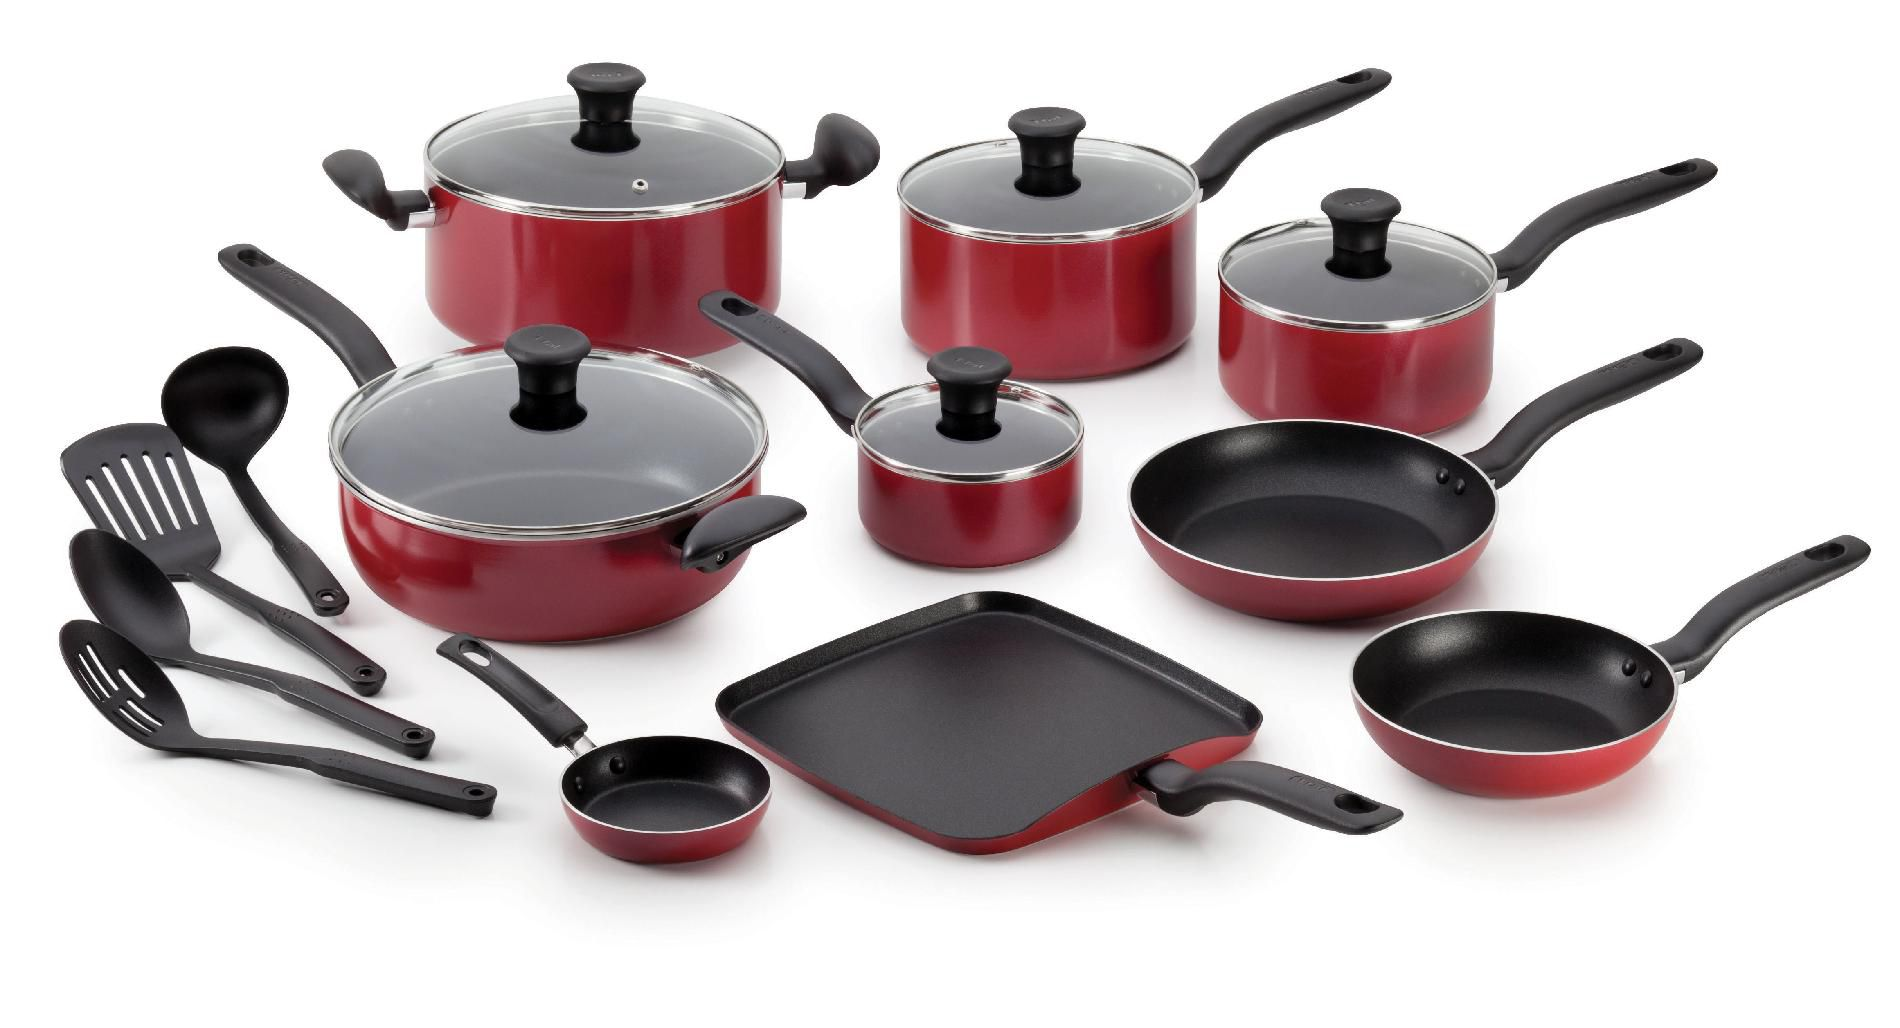 kitchen cookware sets play kitchens for sale t fal initiatives 18 piece nonstick inside and out